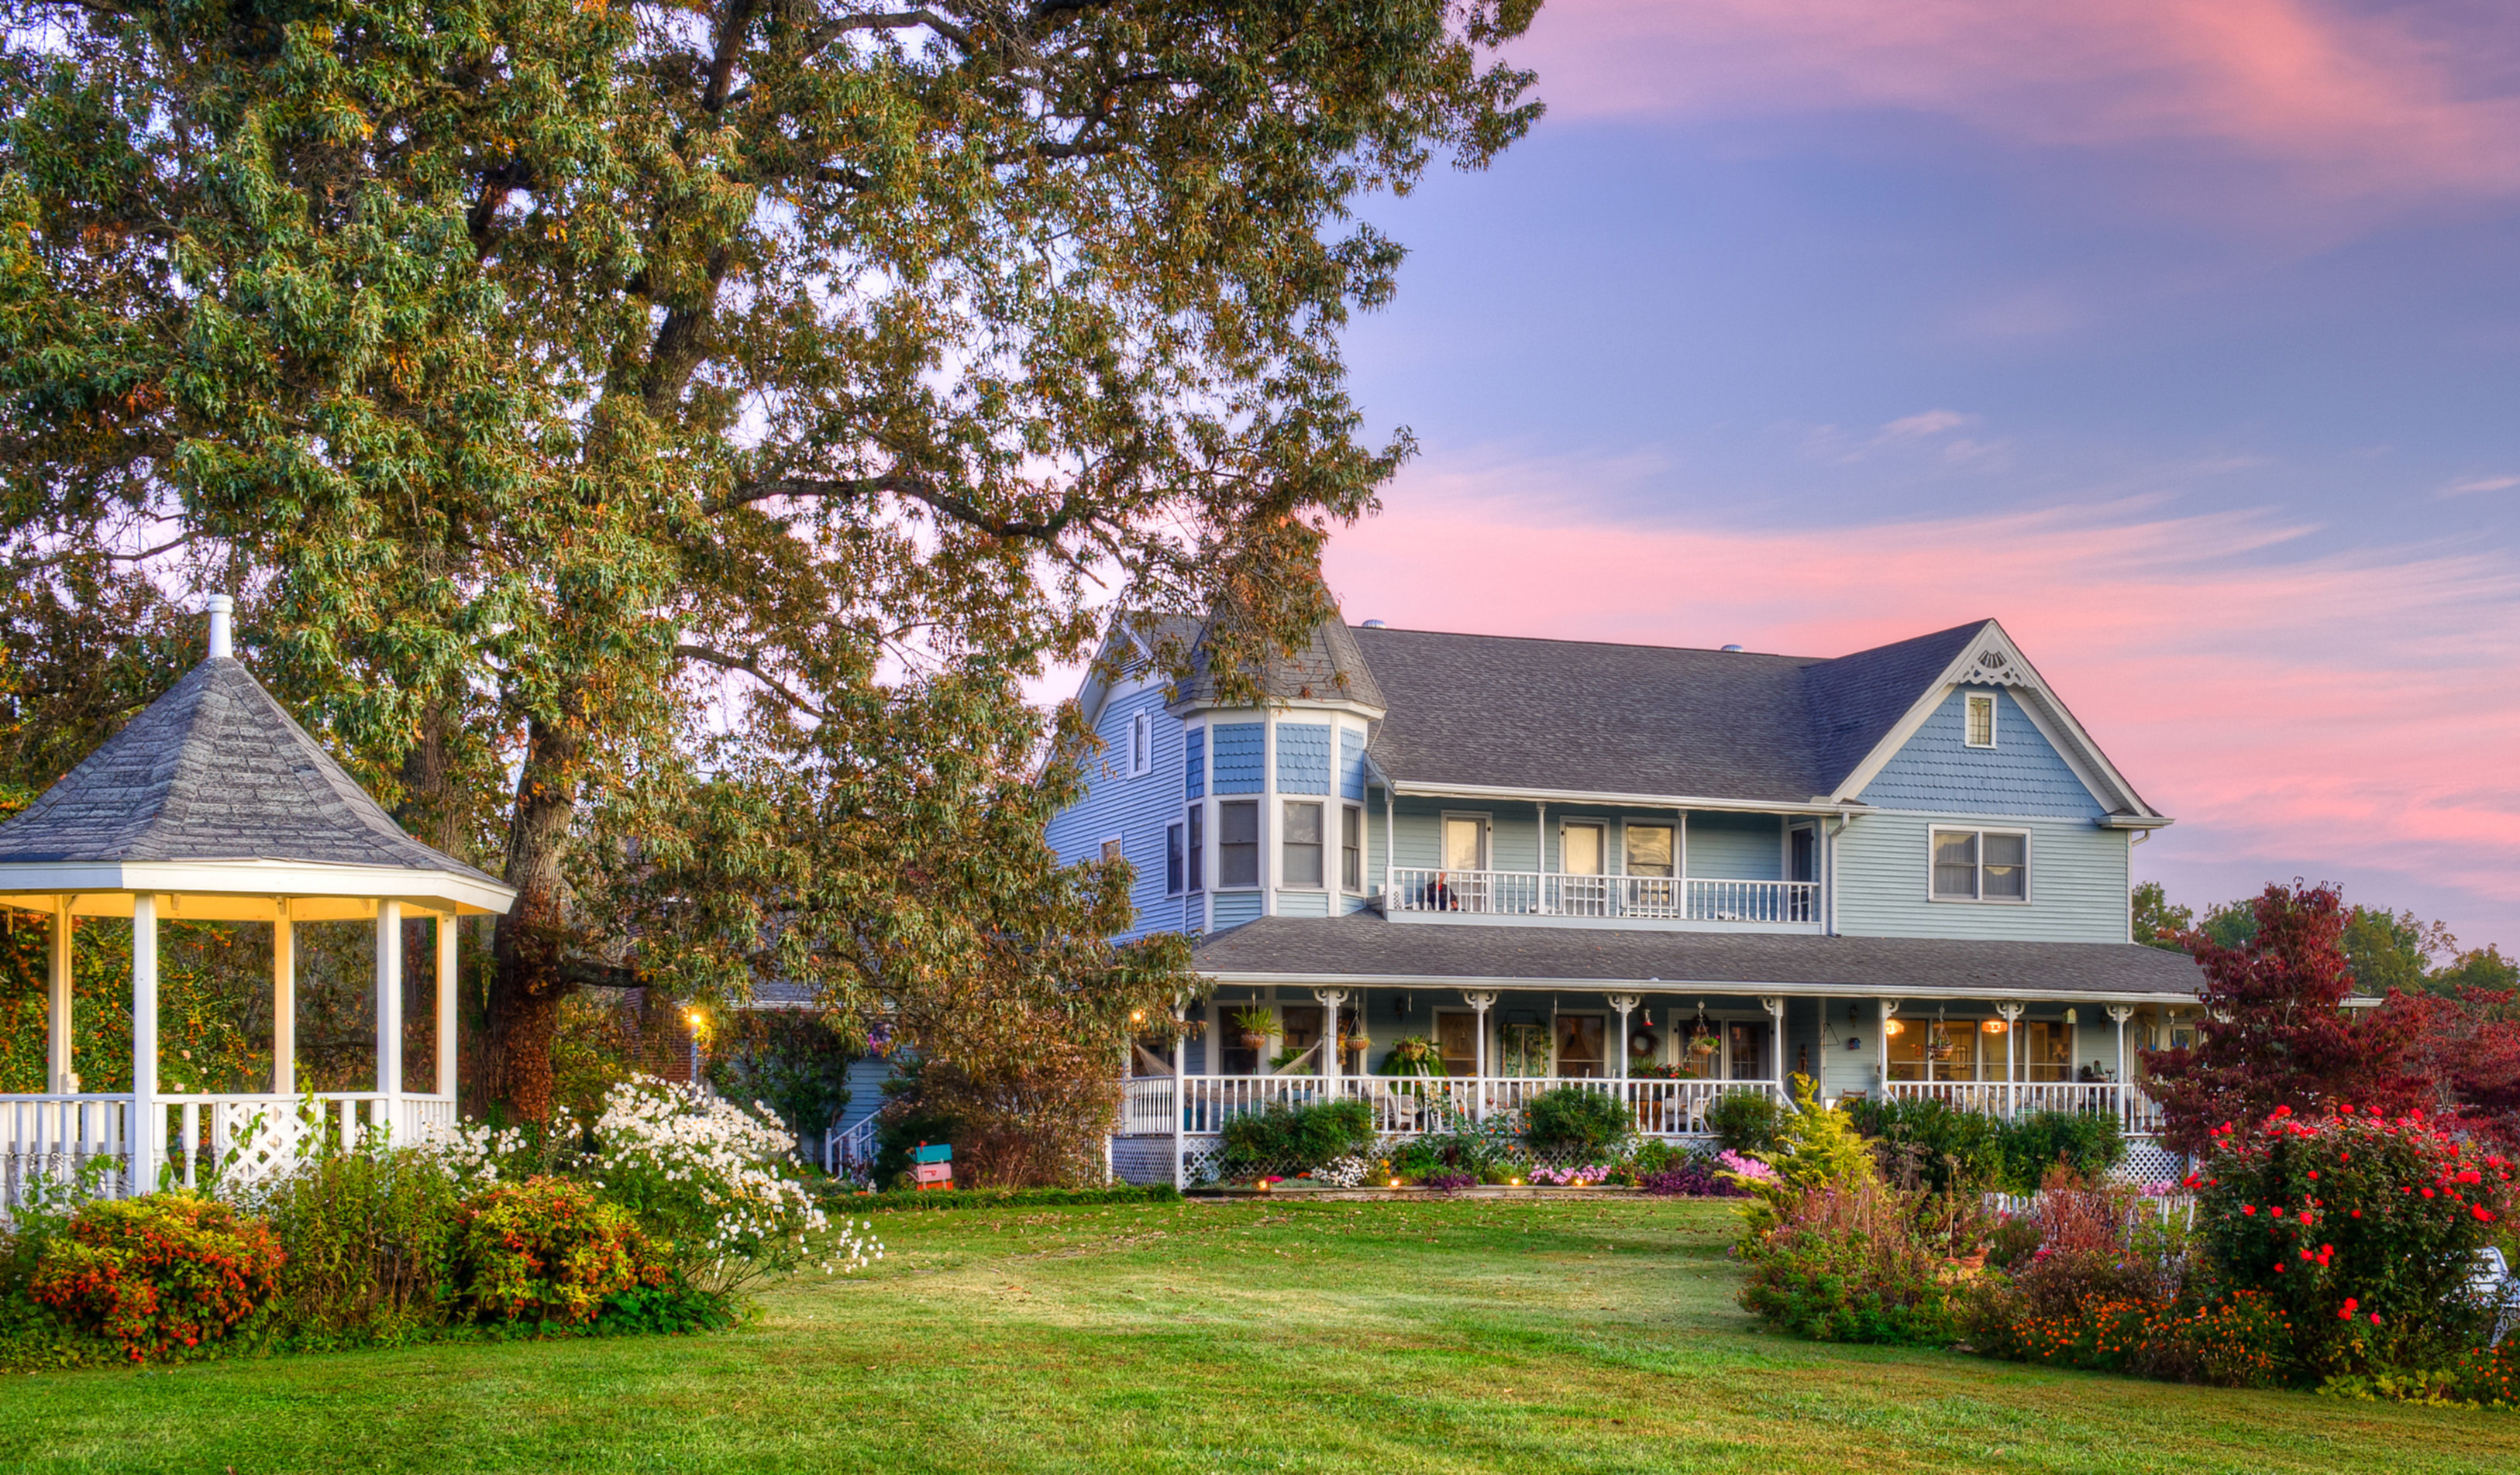 A house with bushes in front of a building at Blue Mountain Mist Country Inn and Spa.